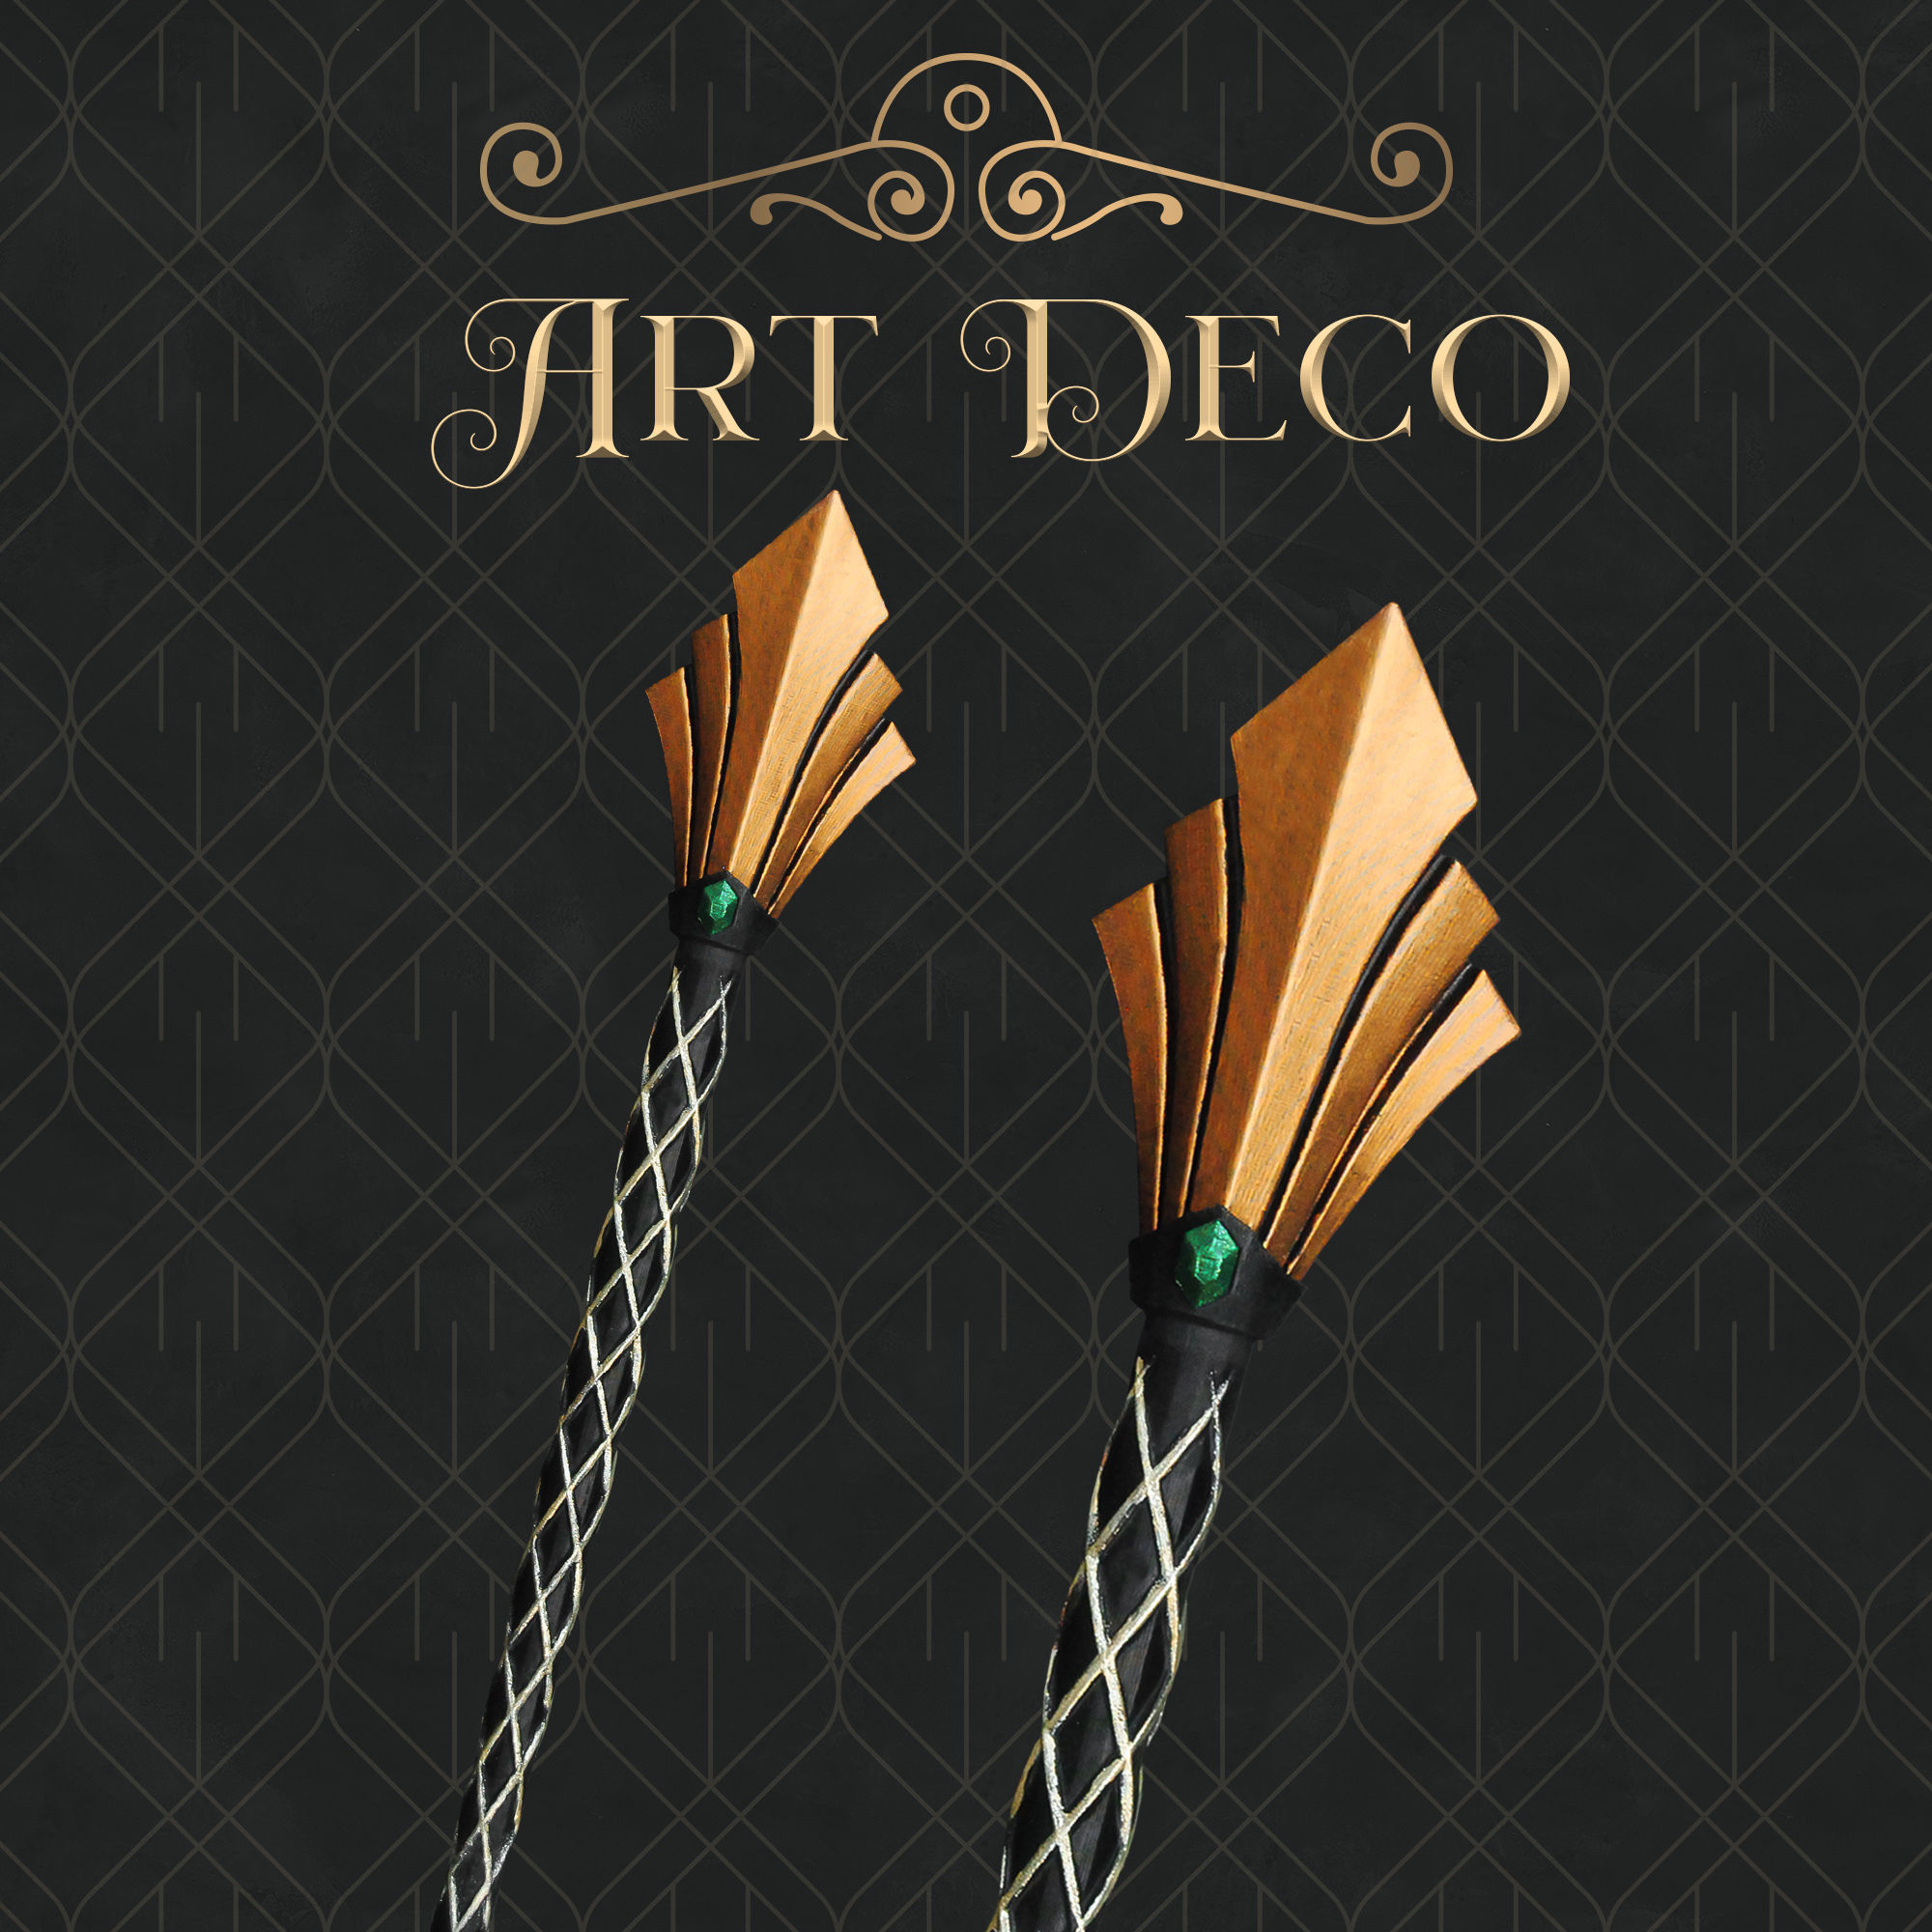 Art Deco Magic Wand - Harry Potter